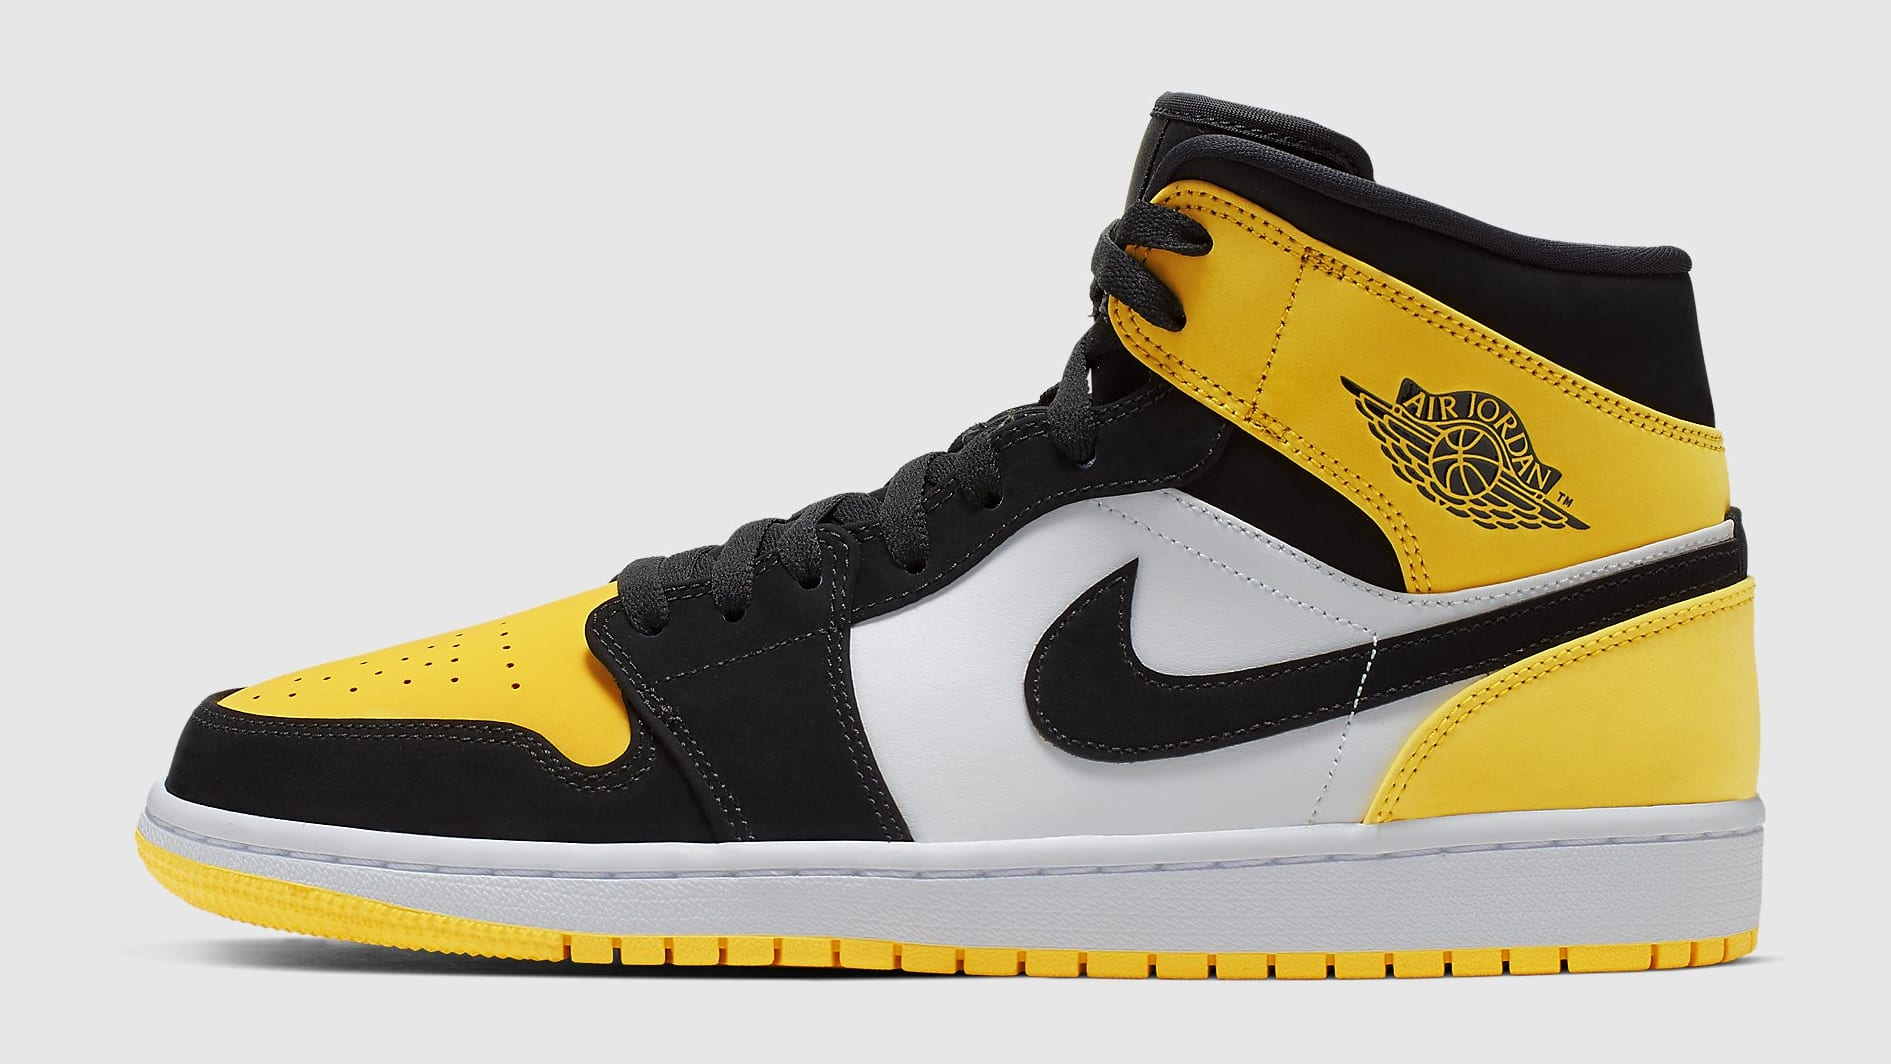 Air Jordan 1 Mid Yellow Toe Release Date 852542-071 Profile